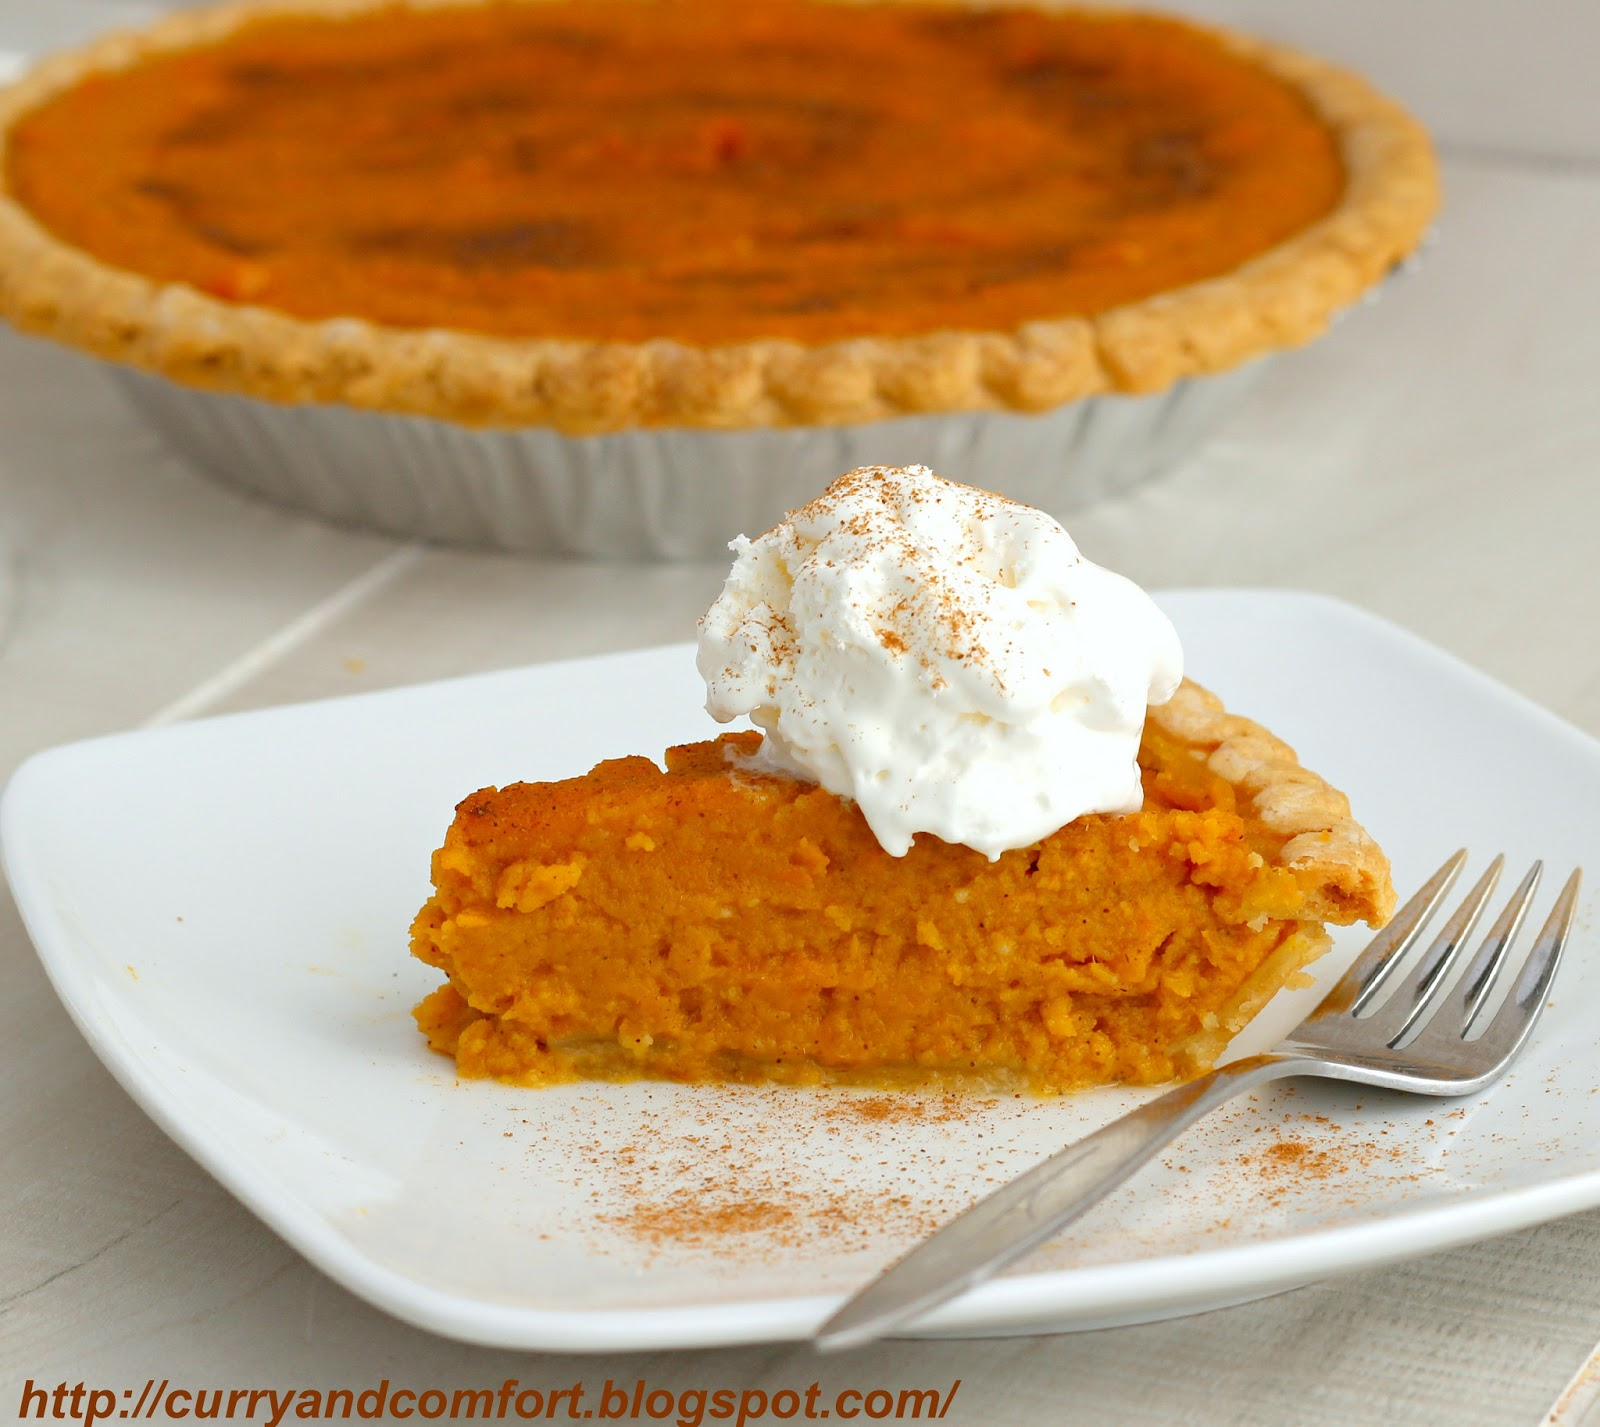 Cartoon Sweet Potato Pie Images & Pictures - Becuo